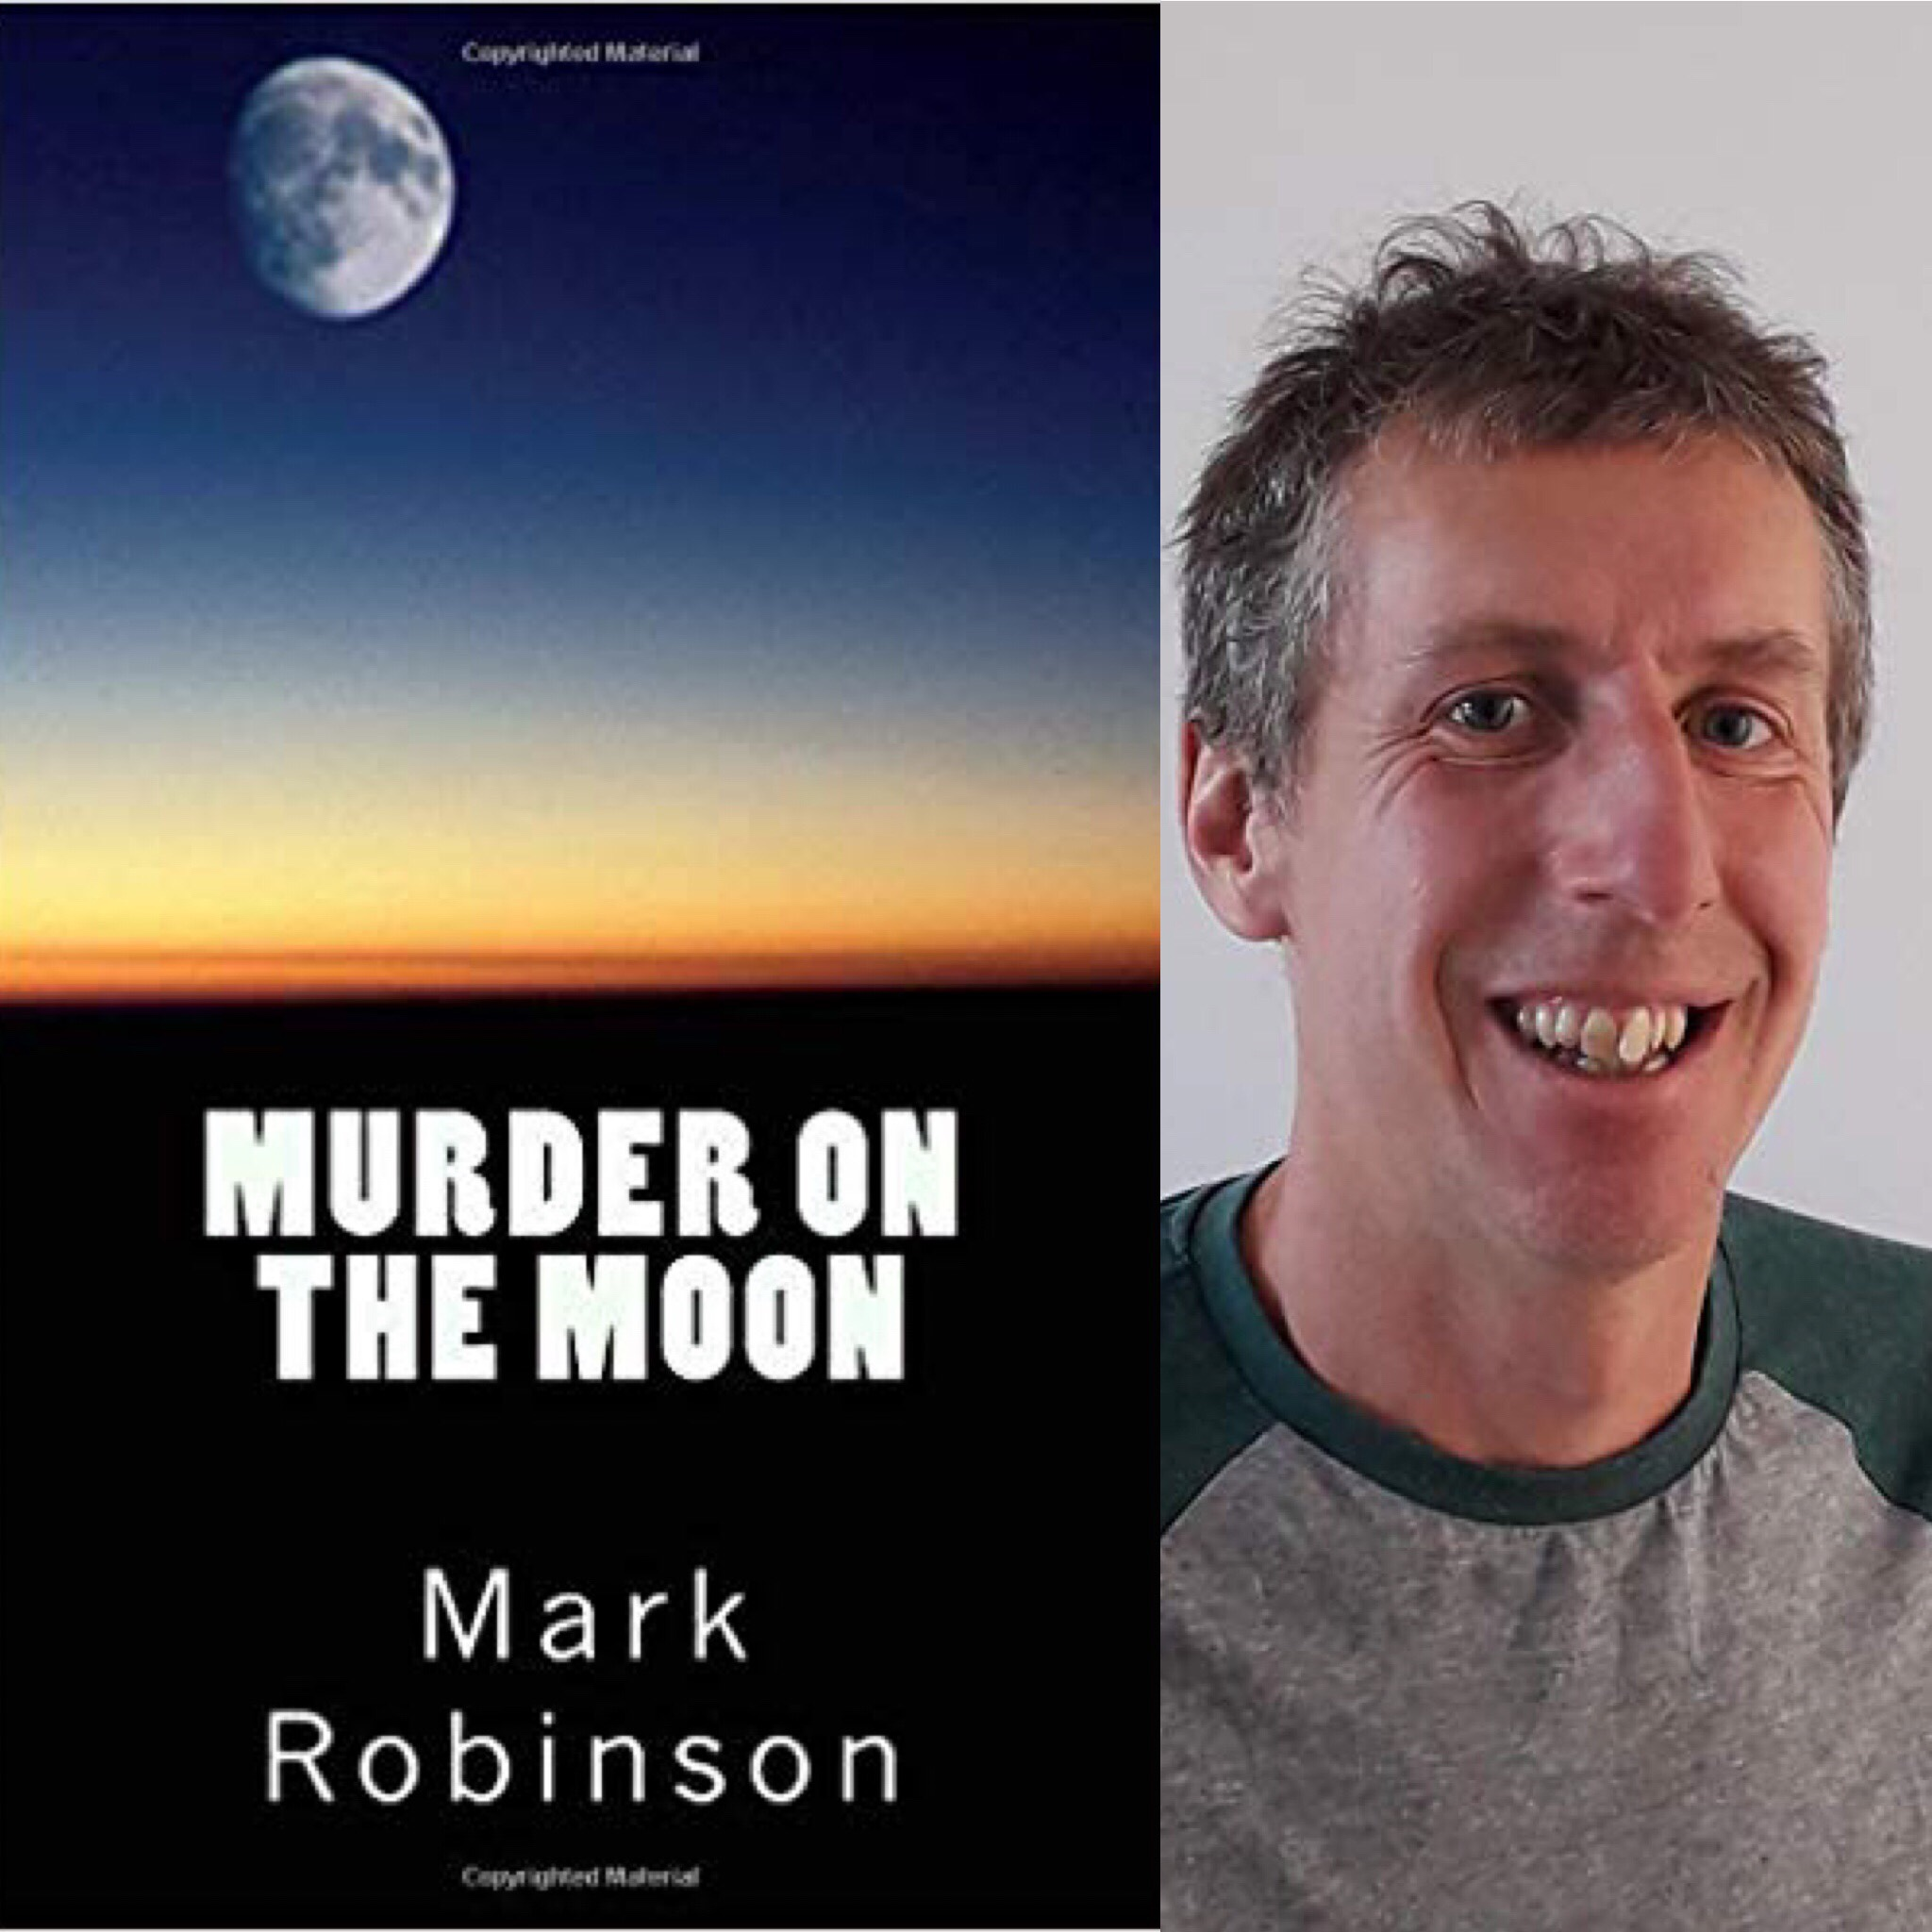 Murder on the moon by Mark Robinson book cover